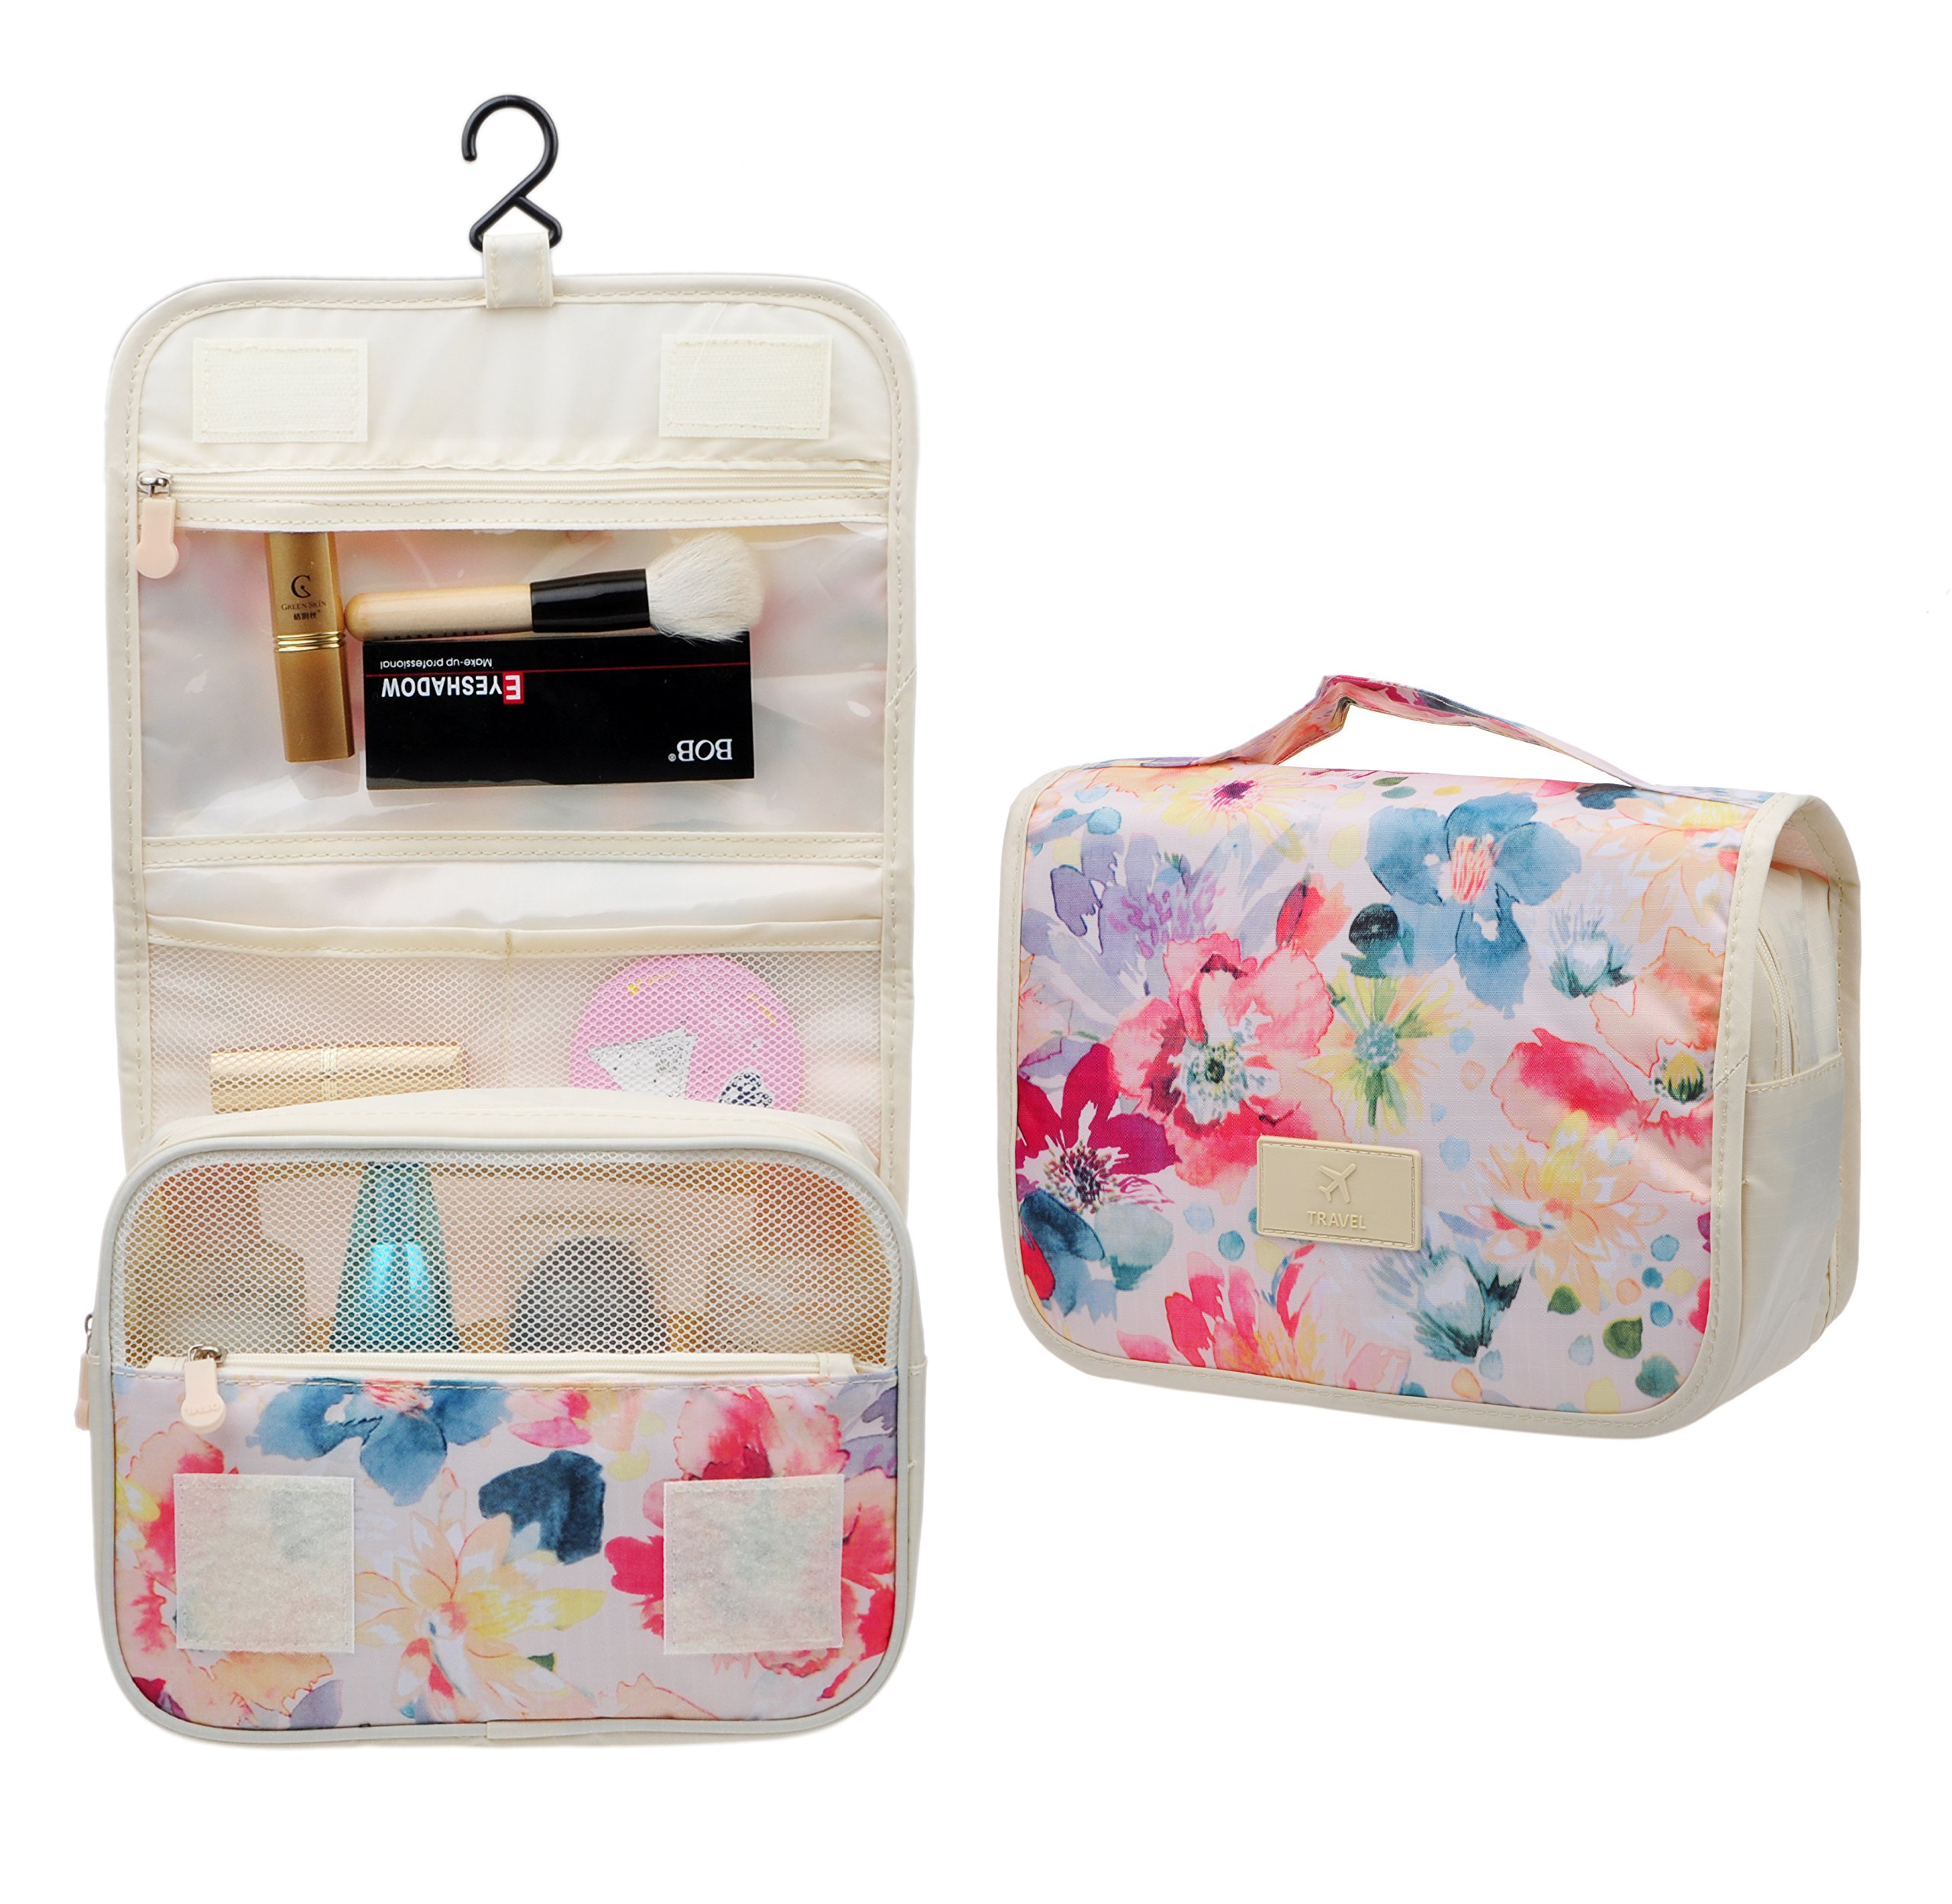 Cosmetic Makeup Bag Case,Hanging Toiletry Bag,Travel Organizer Travel Kit For Women Men (Flower Spring)